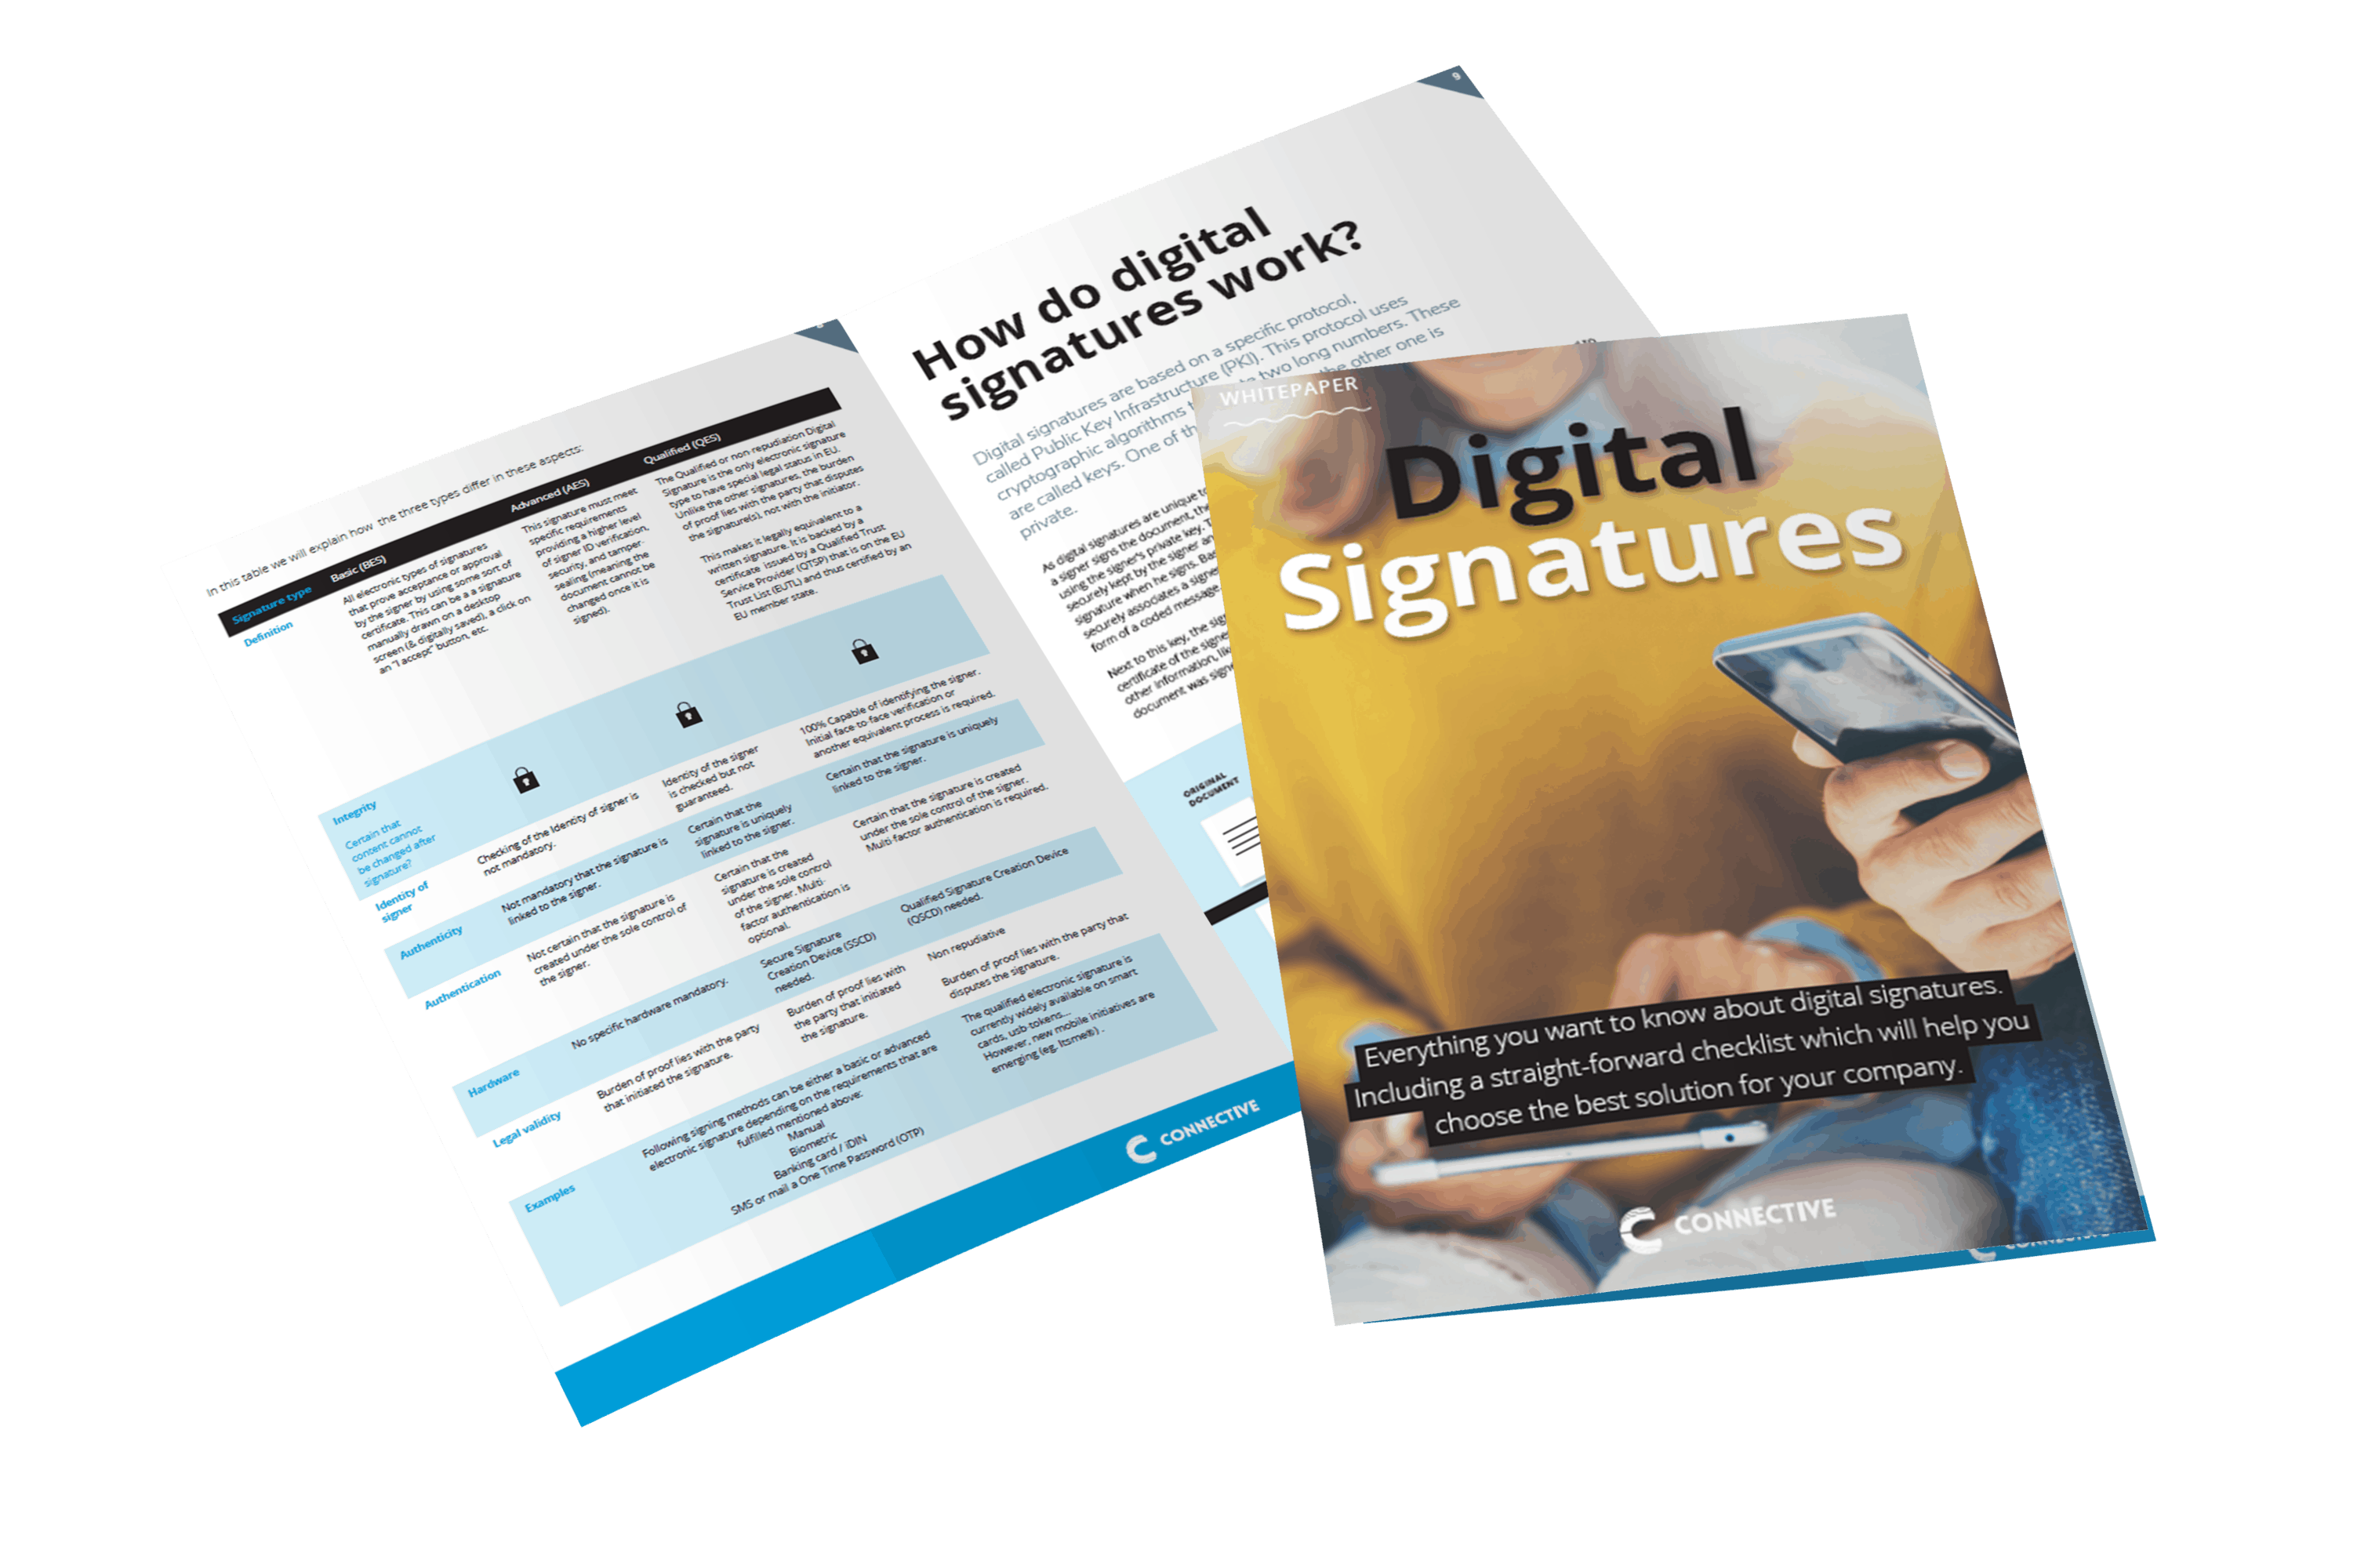 Whitepaper digital signatures Connective